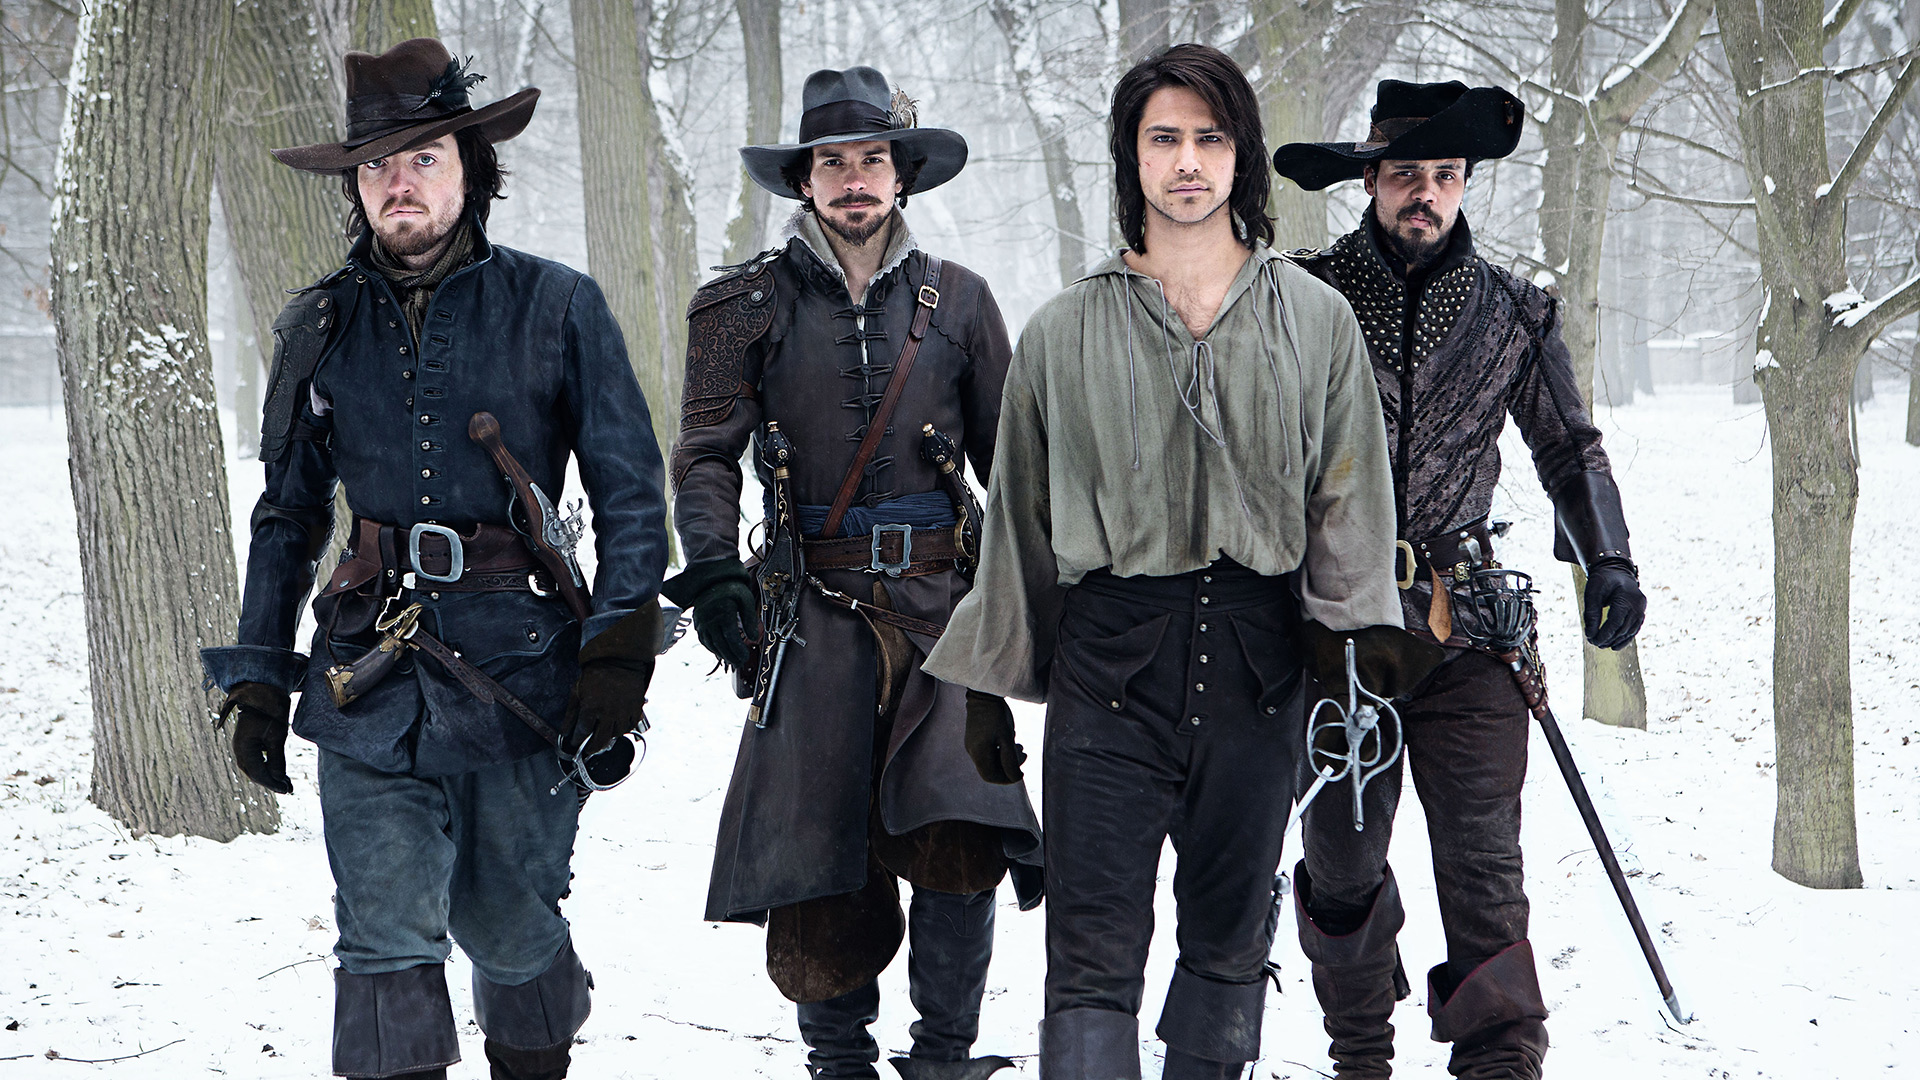 Third season for The Musketeers